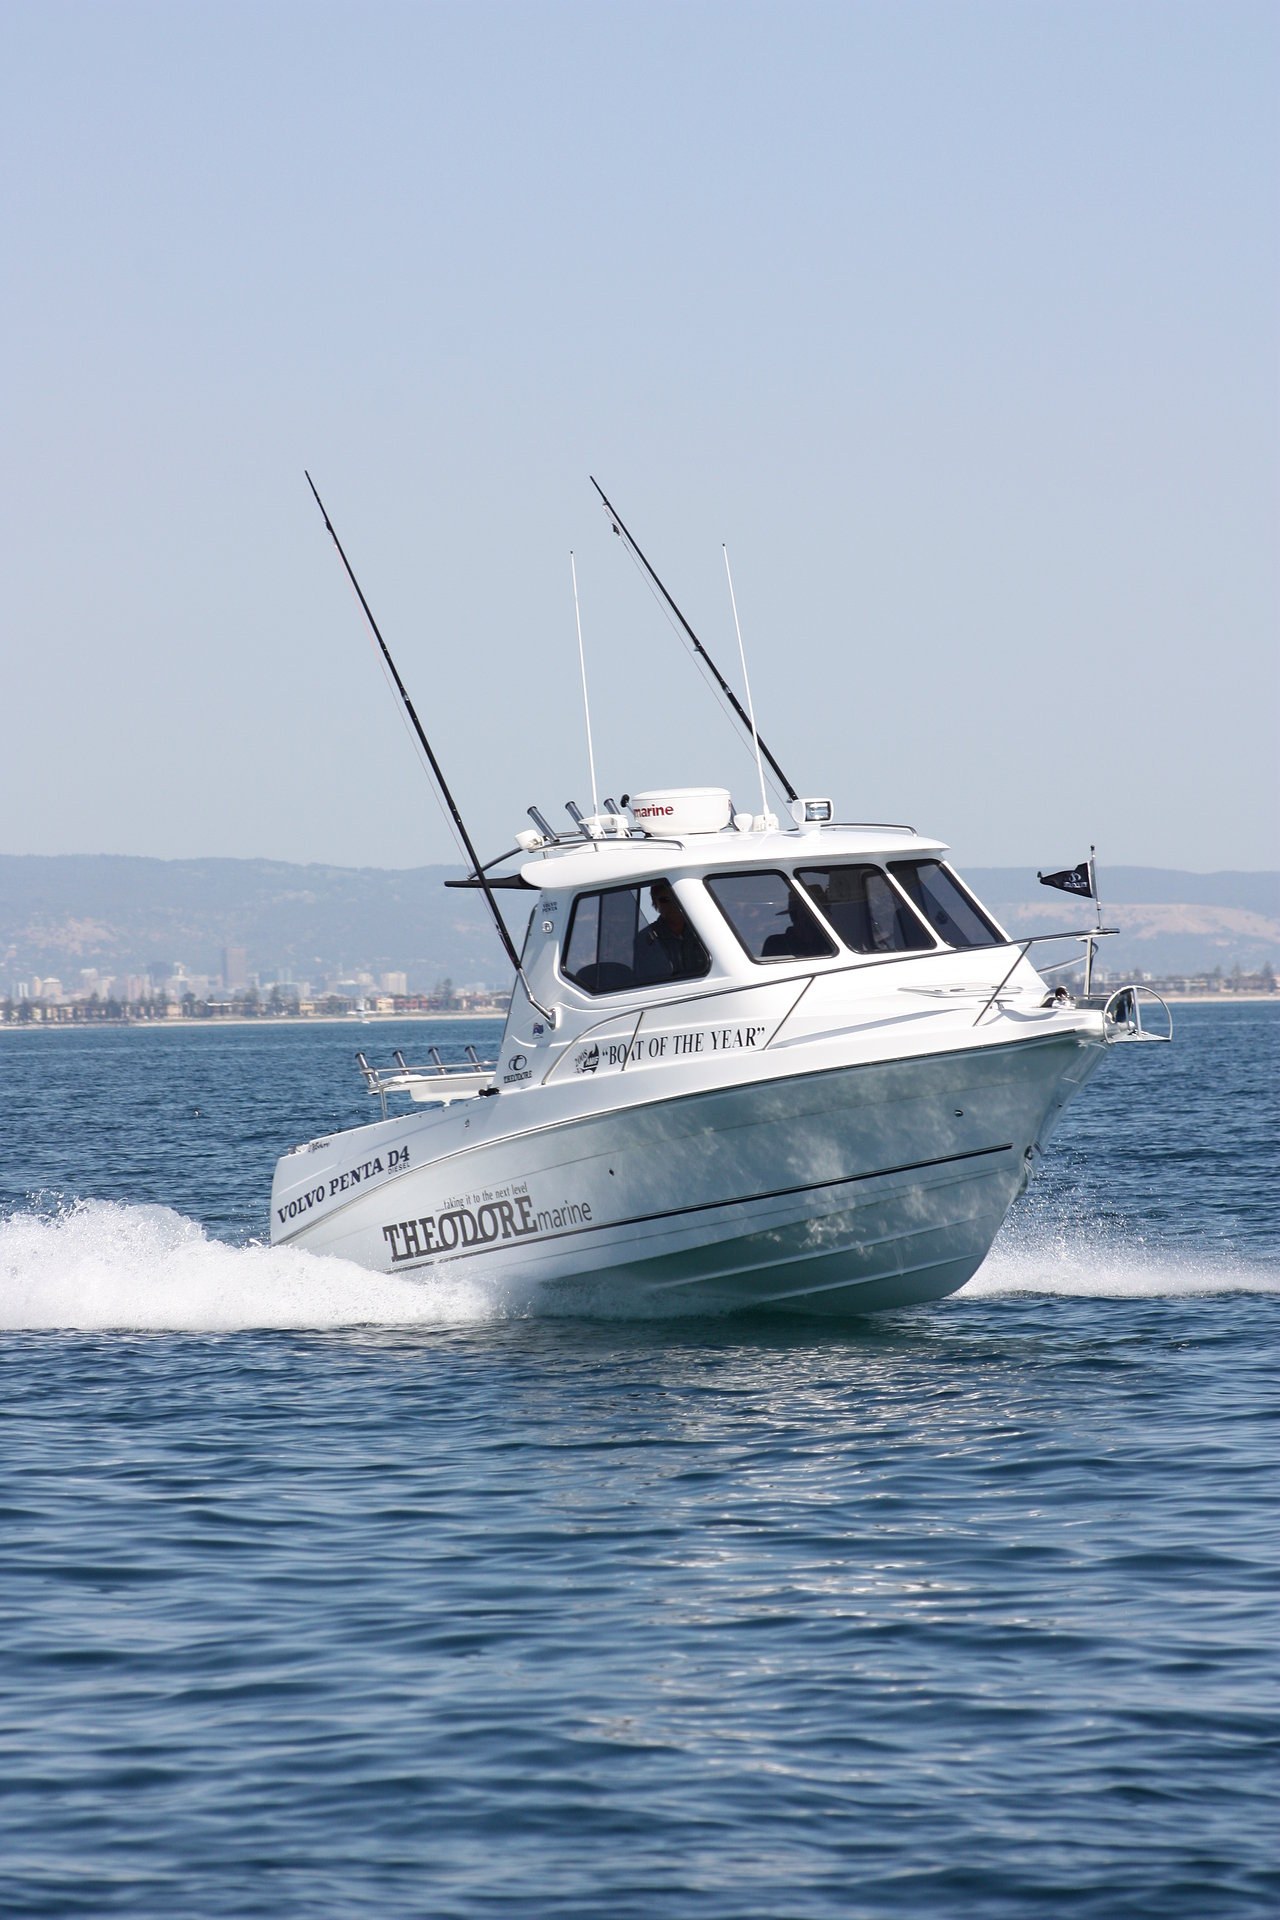 Theodore 720 Offshore Starboard